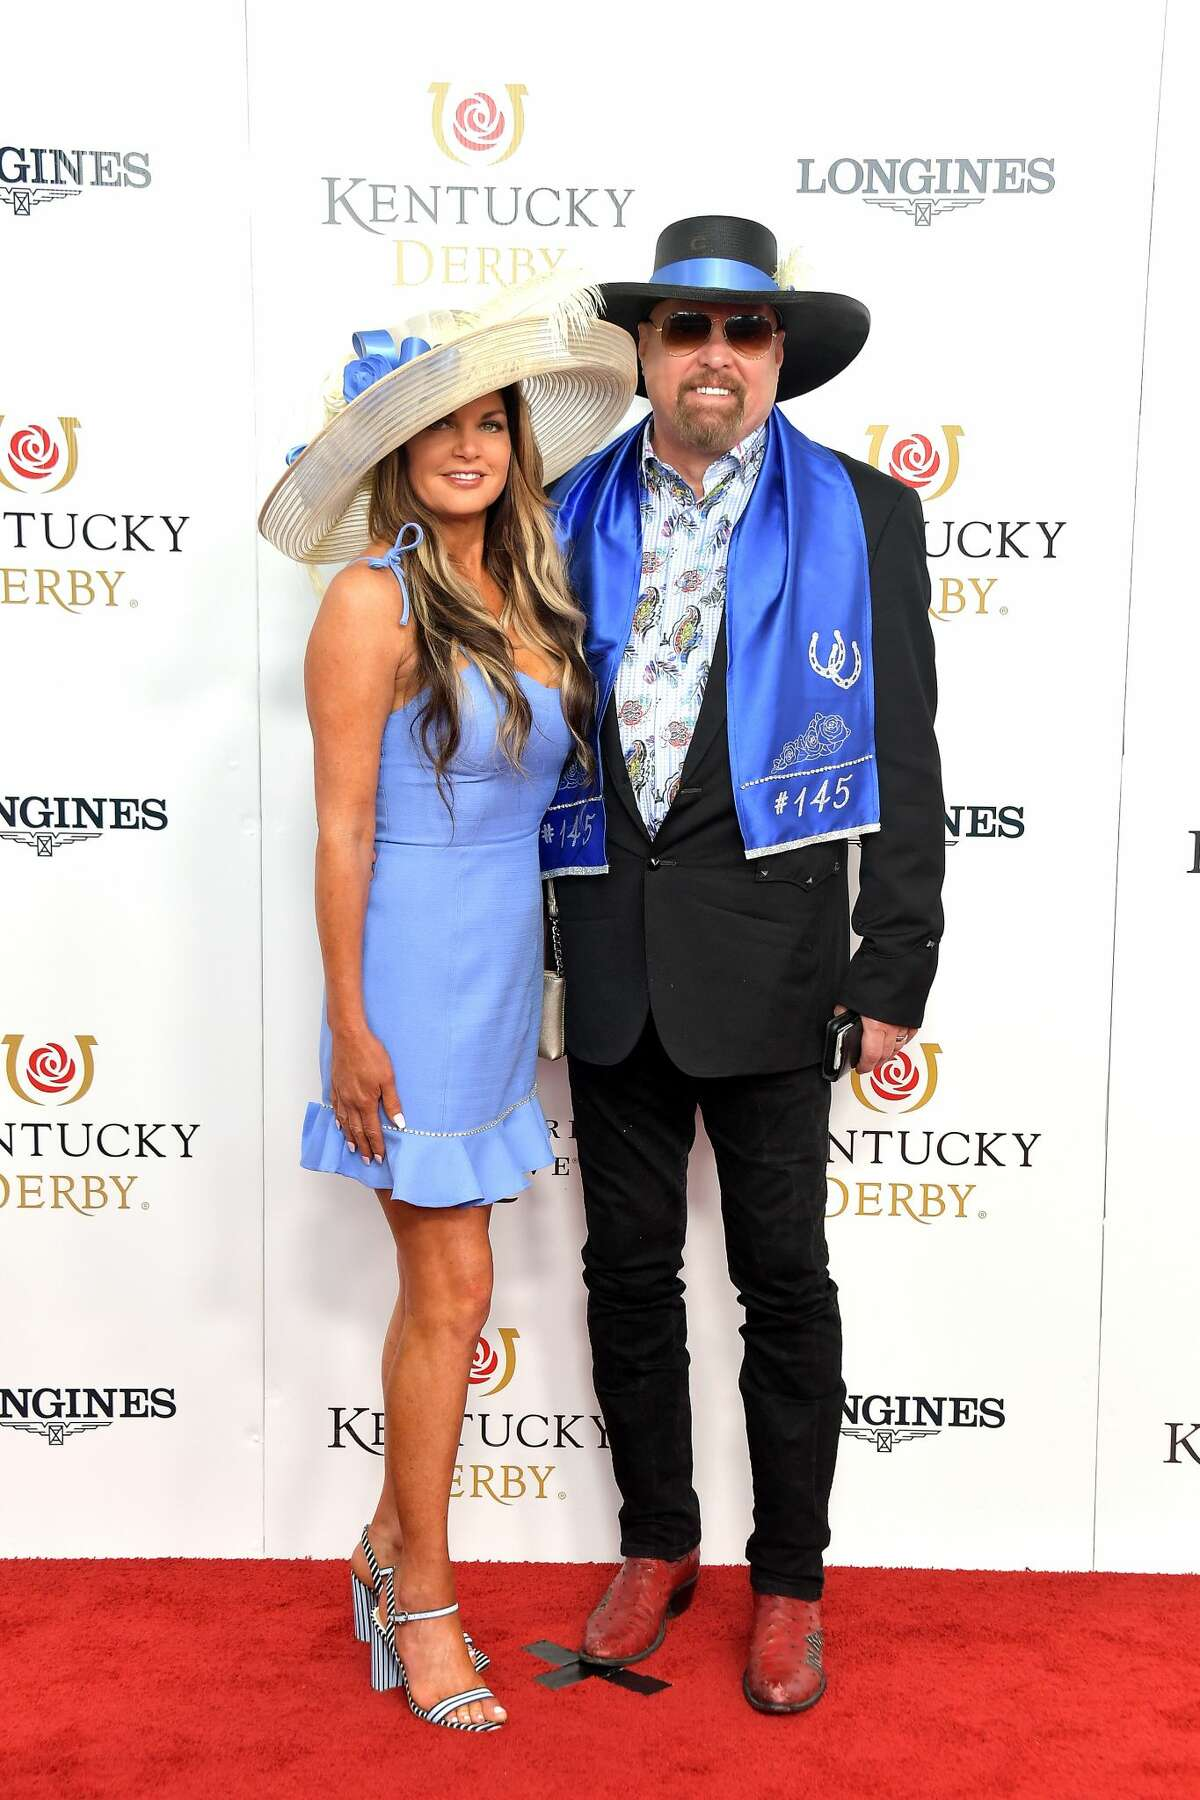 LOUISVILLE, KENTUCKY - MAY 04: Jennifer Montgomery and Eddie Montgomery attend the 145th Kentucky Derby at Churchill Downs on May 04, 2019 in Louisville, Kentucky. (Photo by Michael Loccisano/Getty Images for Churchill Downs)